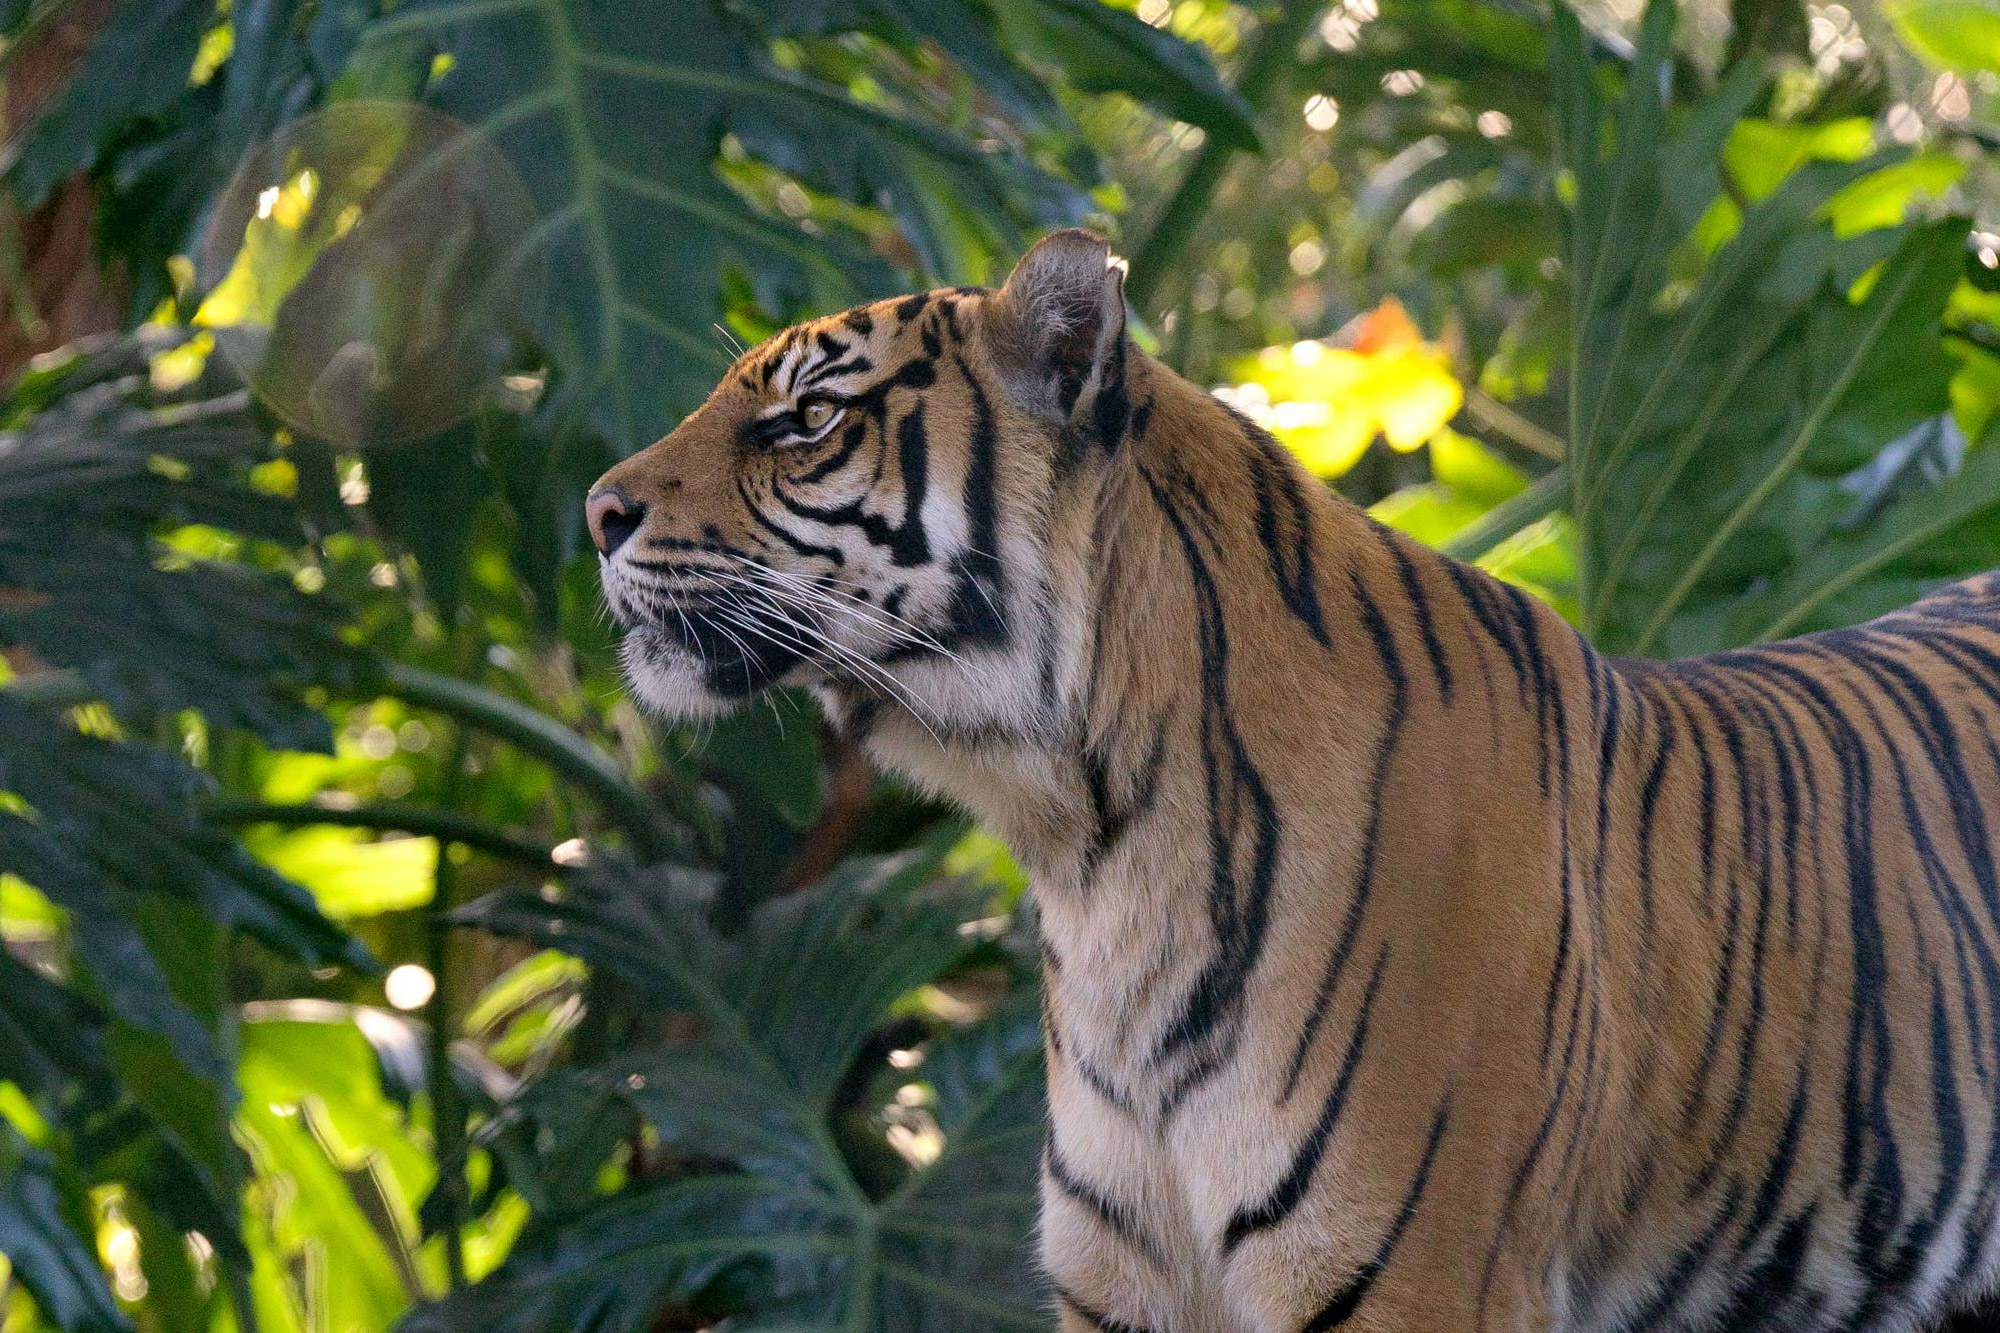 Tiger at Taronga Zoo